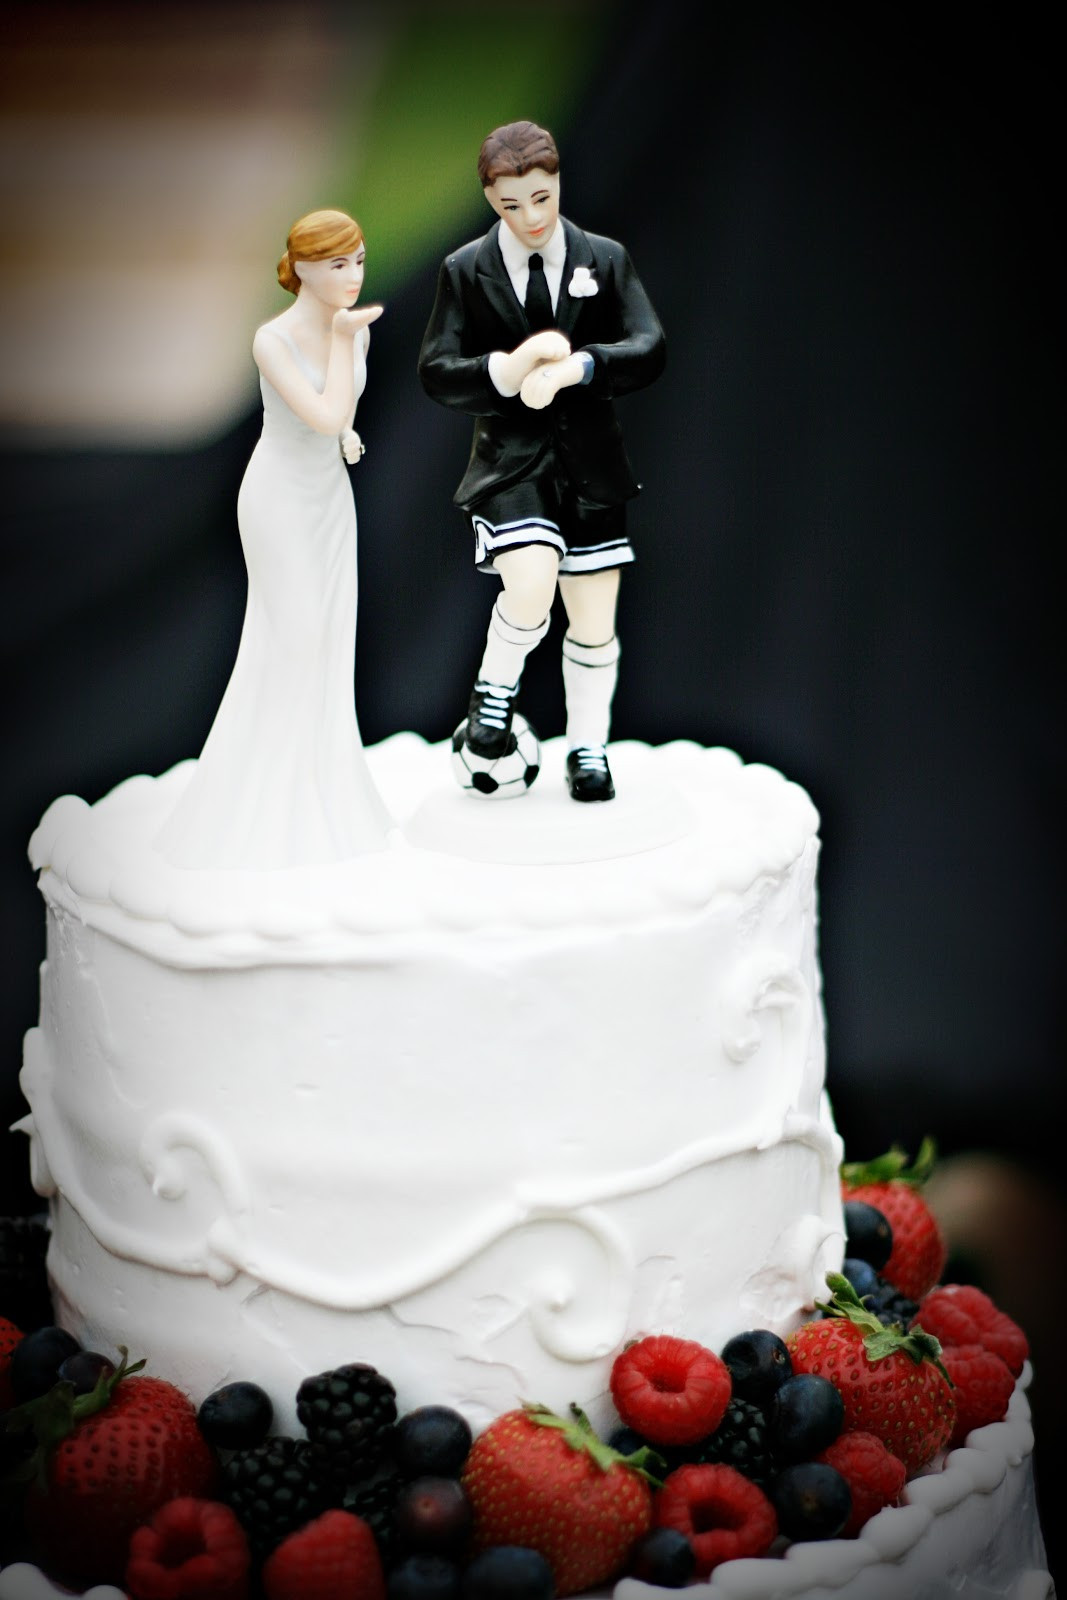 Soccer Wedding Cakes  Cakes By Kim A Soccer Players Wedding